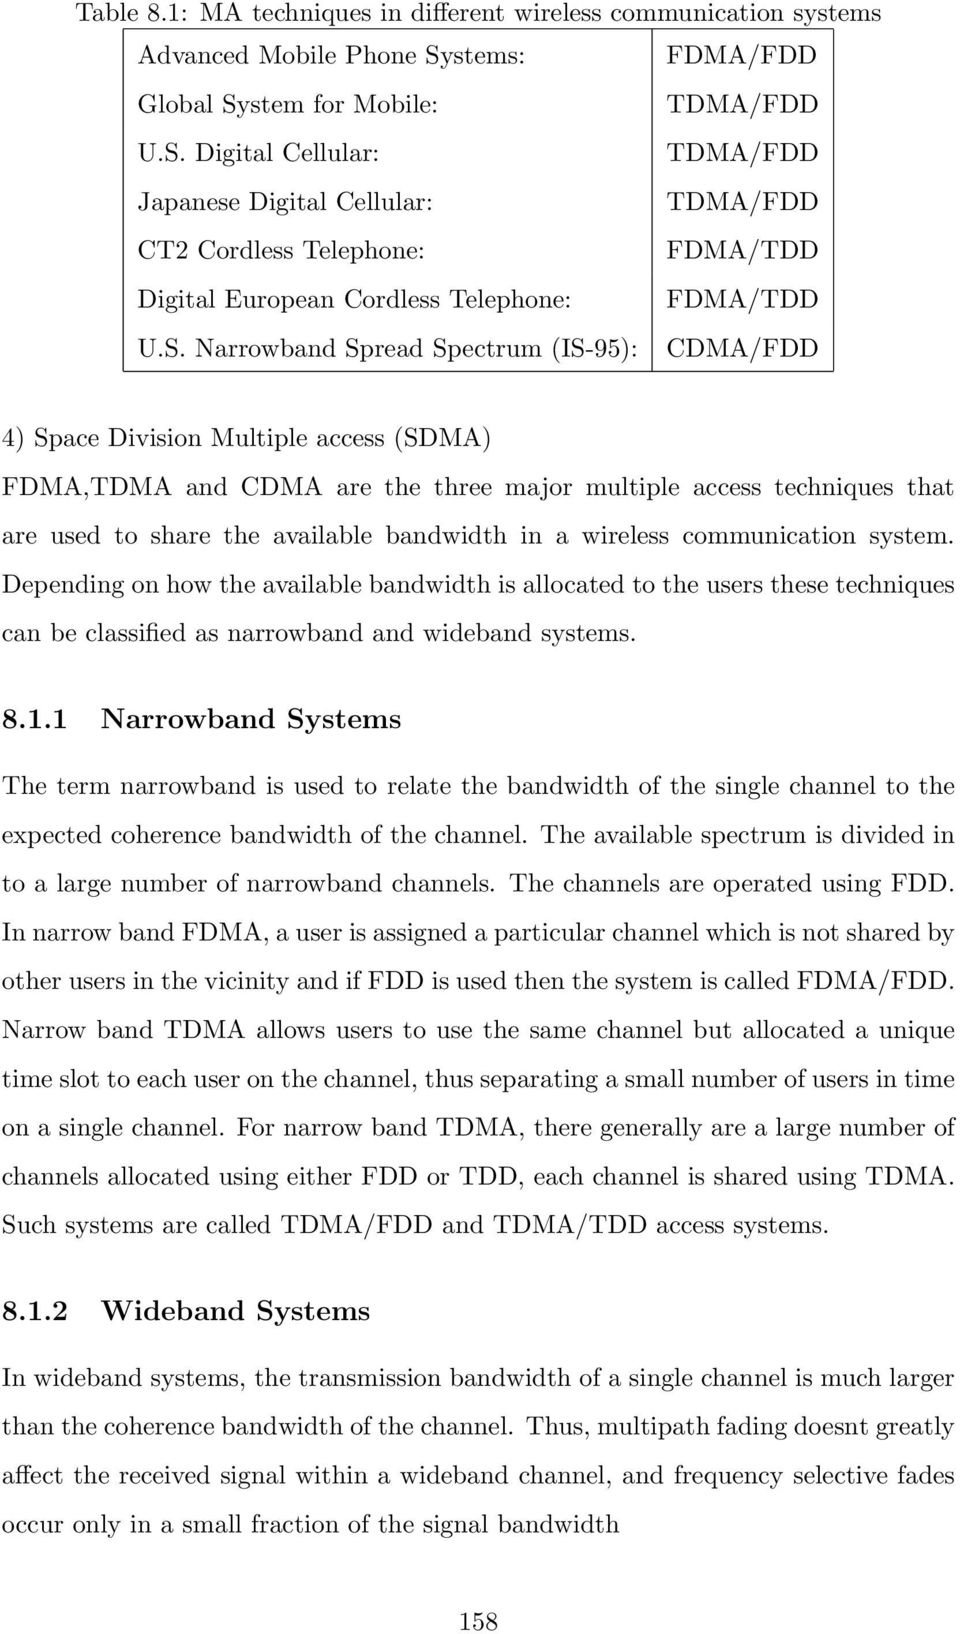 S. Narrowband Spread Spectrum (IS-95): CDMA/FDD 4) Space Division Multiple access (SDMA) FDMA,TDMA and CDMA are the three major multiple access techniques that are used to share the available